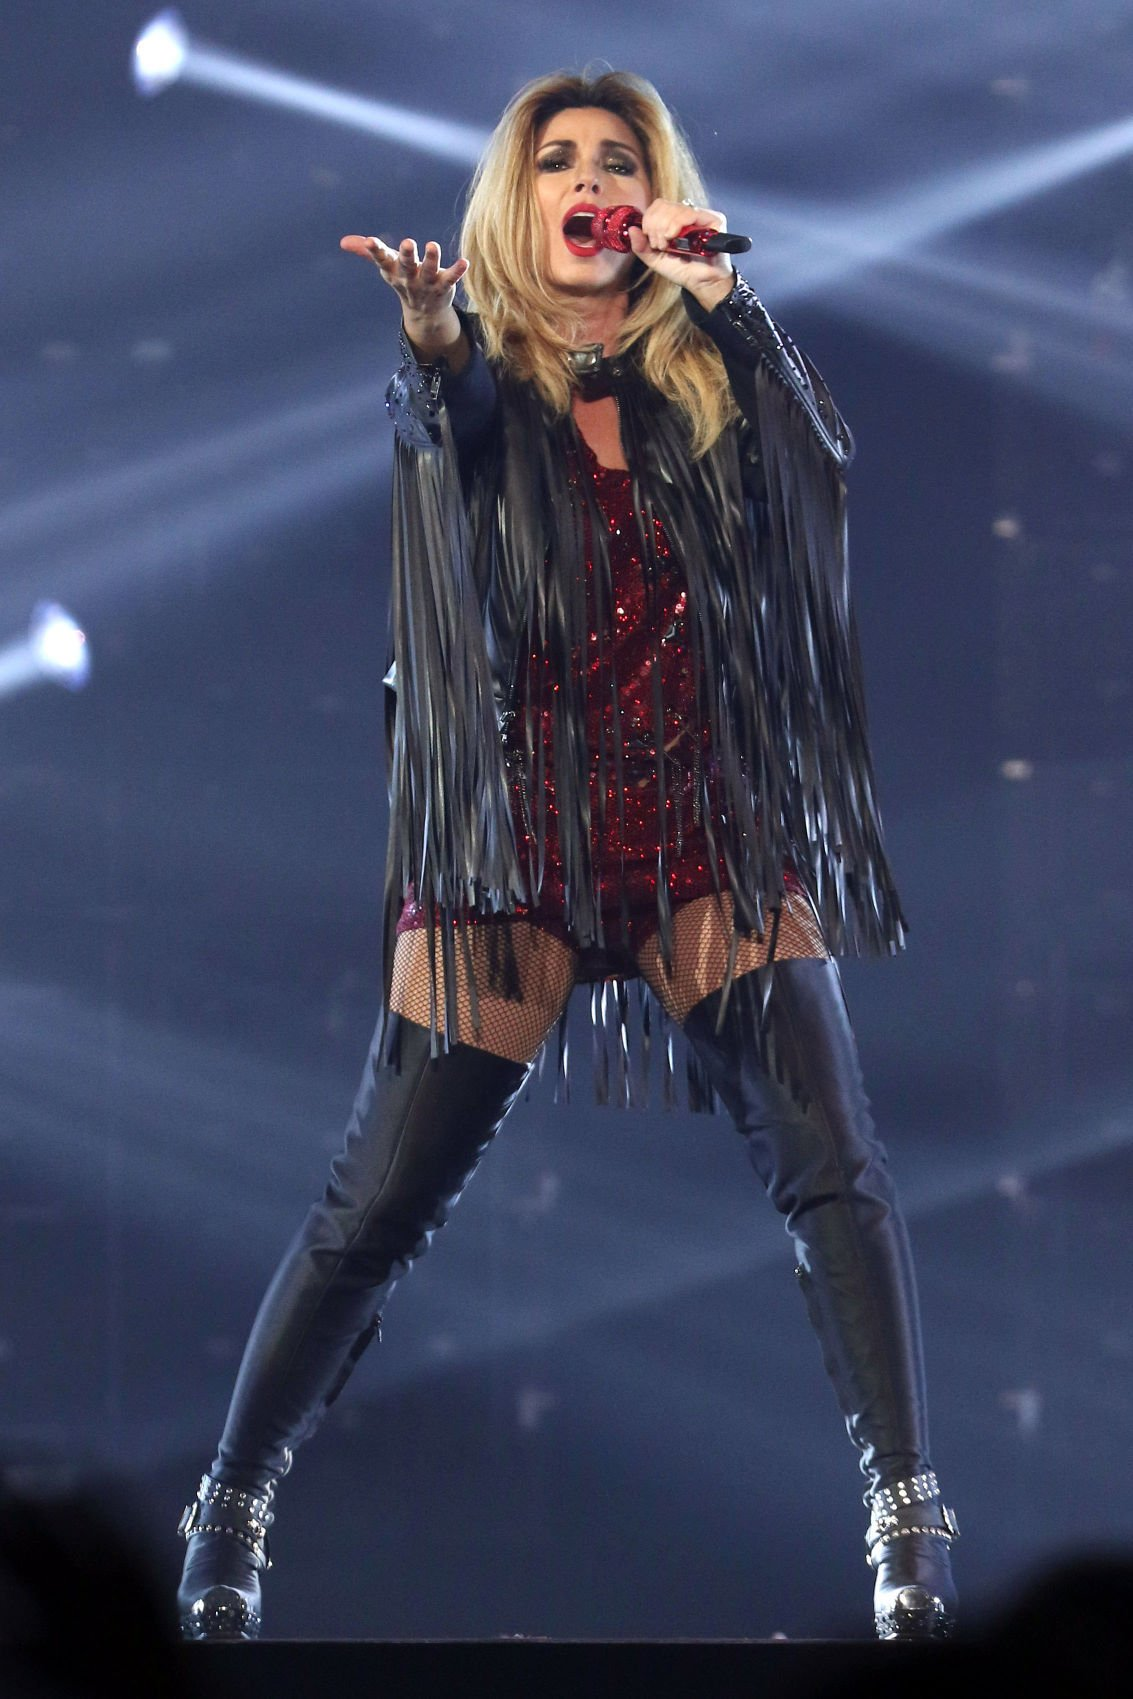 Shania Twain To Continue To Rock The Country Music